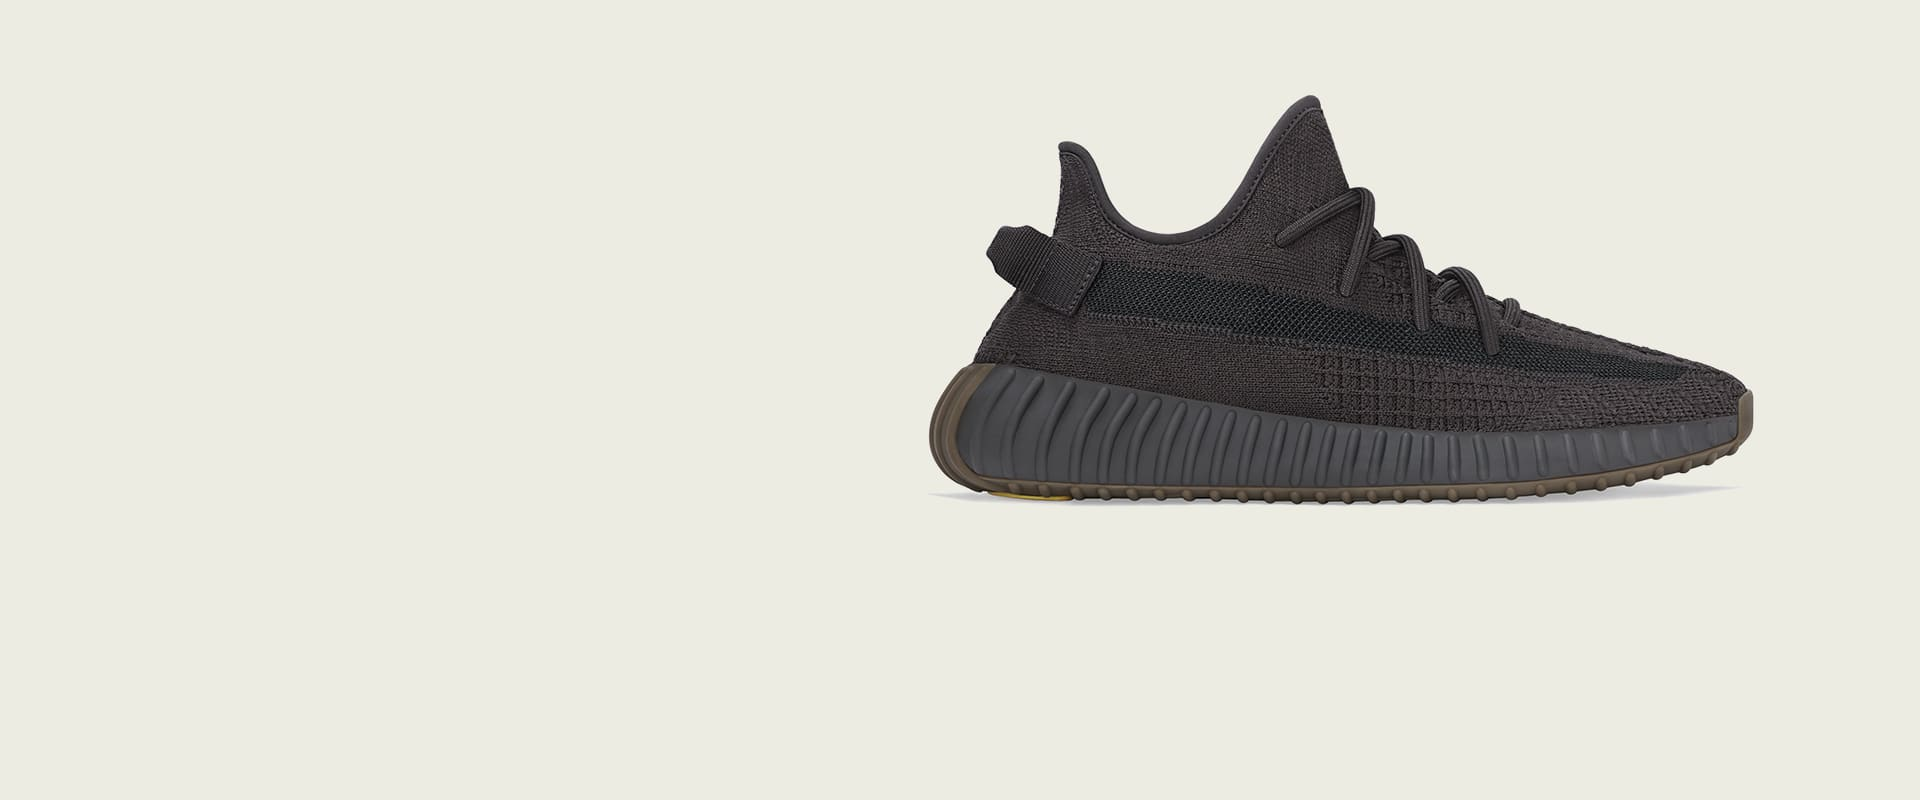 Yeezy Trainers, Cheap Yeezy Trainers on Sale 2019